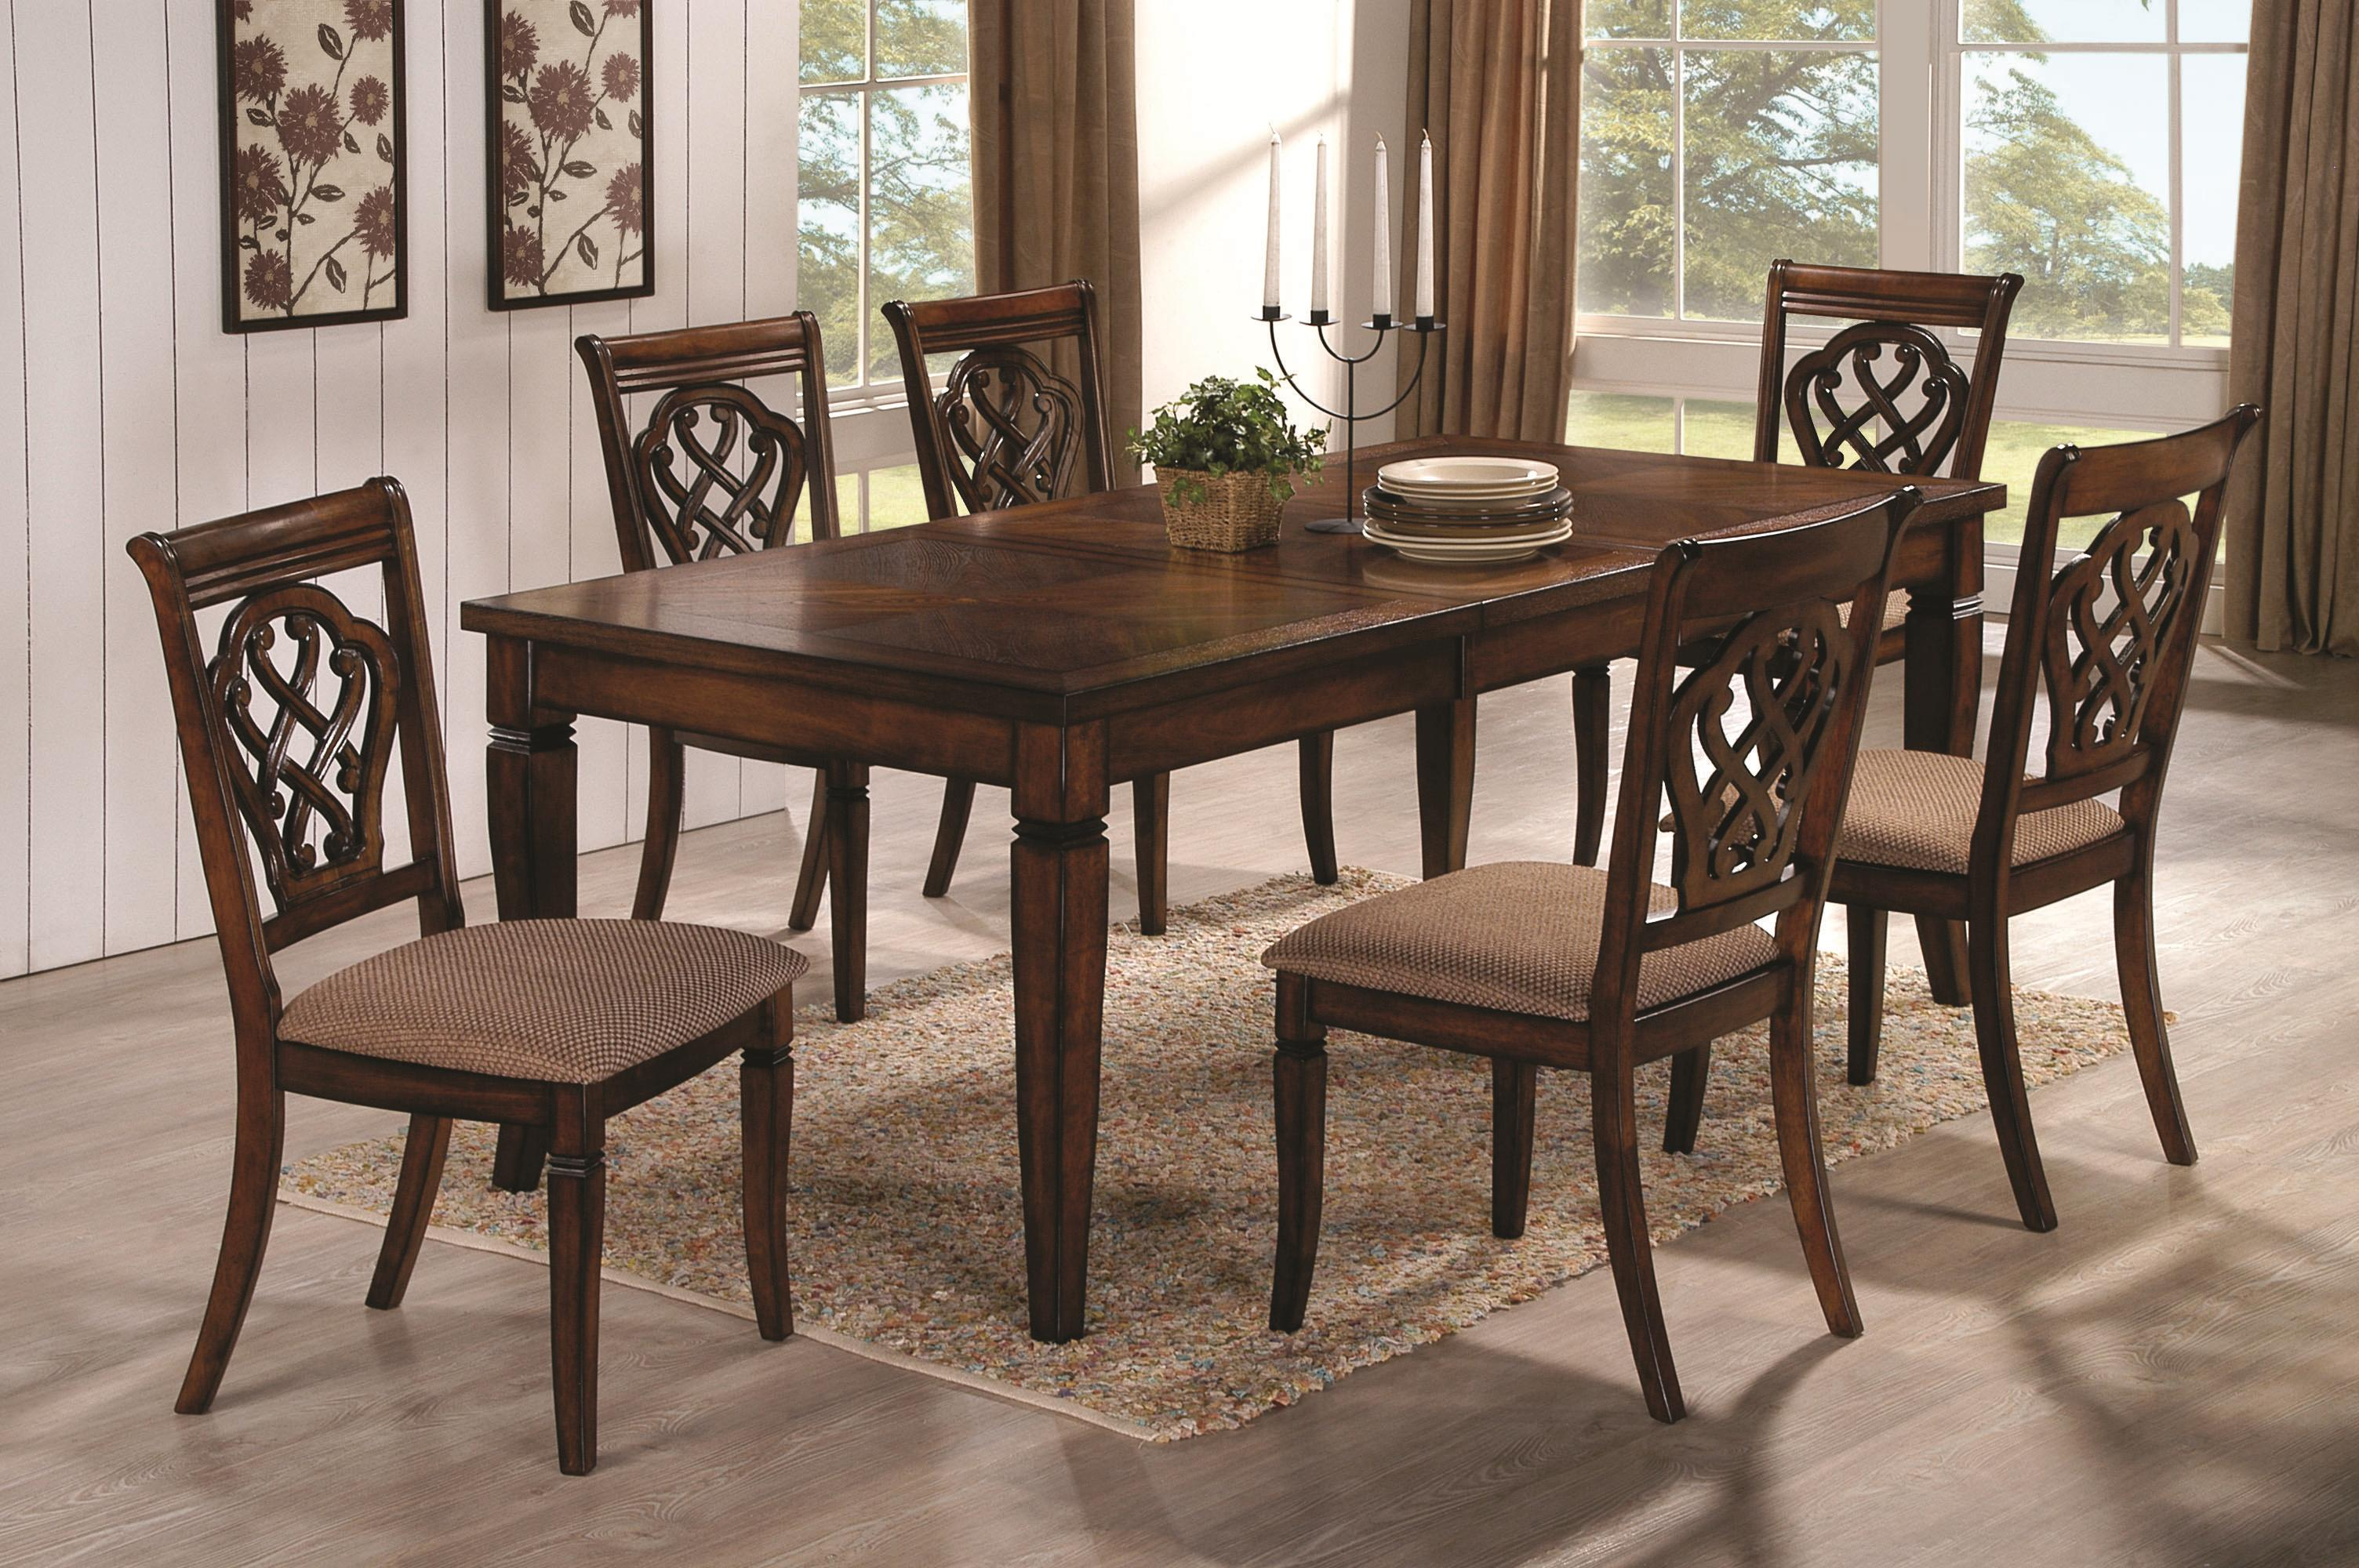 Dining Table Chairs Upholstered - Coaster dining 10339 upholstered dining chair with decorative seat back prime brothers furniture dining side chairs bay city saginaw midland michigan